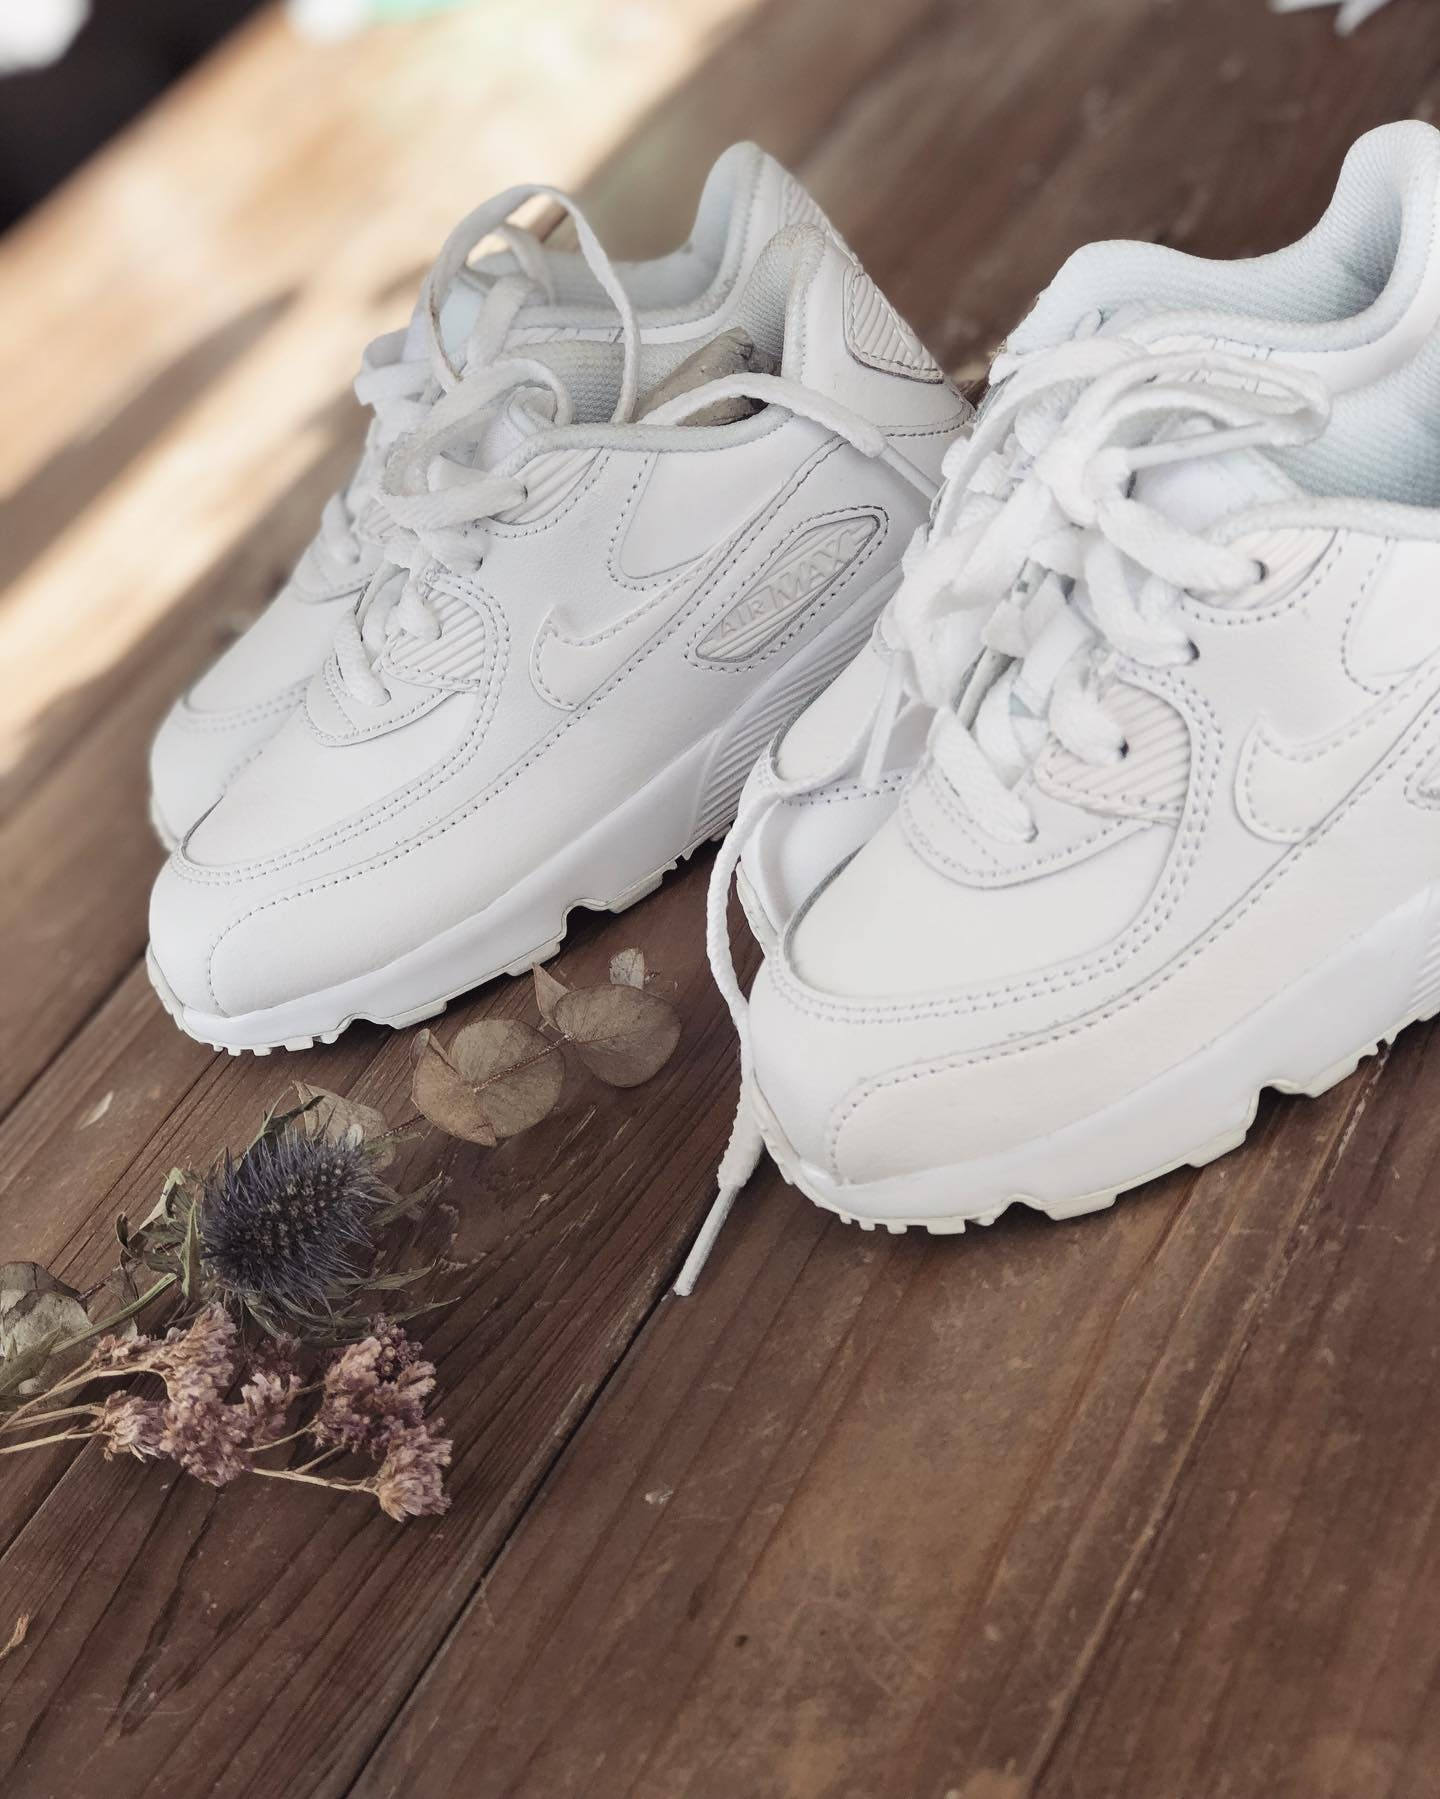 Kjøp Nike Air Max 90 Leather WhiteWhite sko Online | FOOTWAY.no